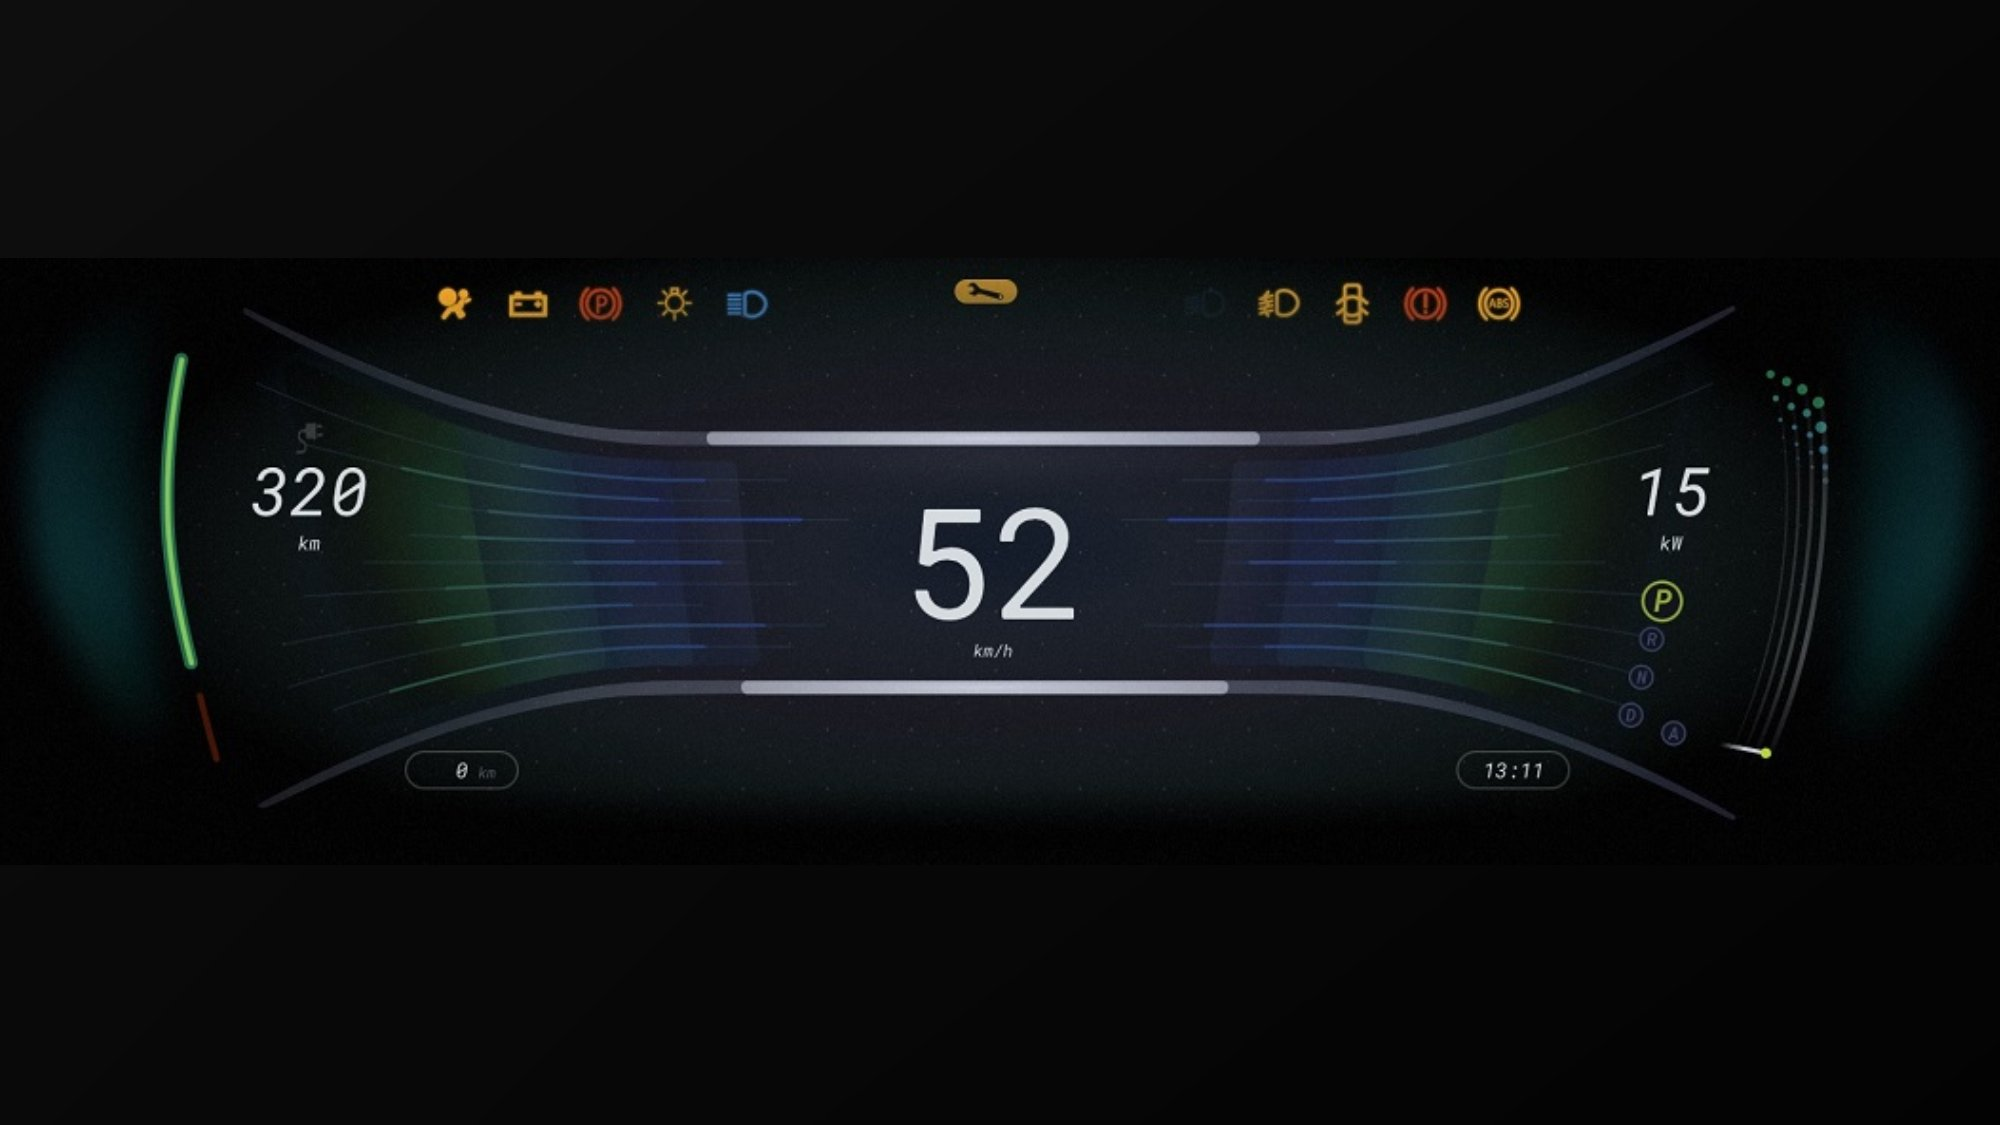 in-vehicle infotainment system